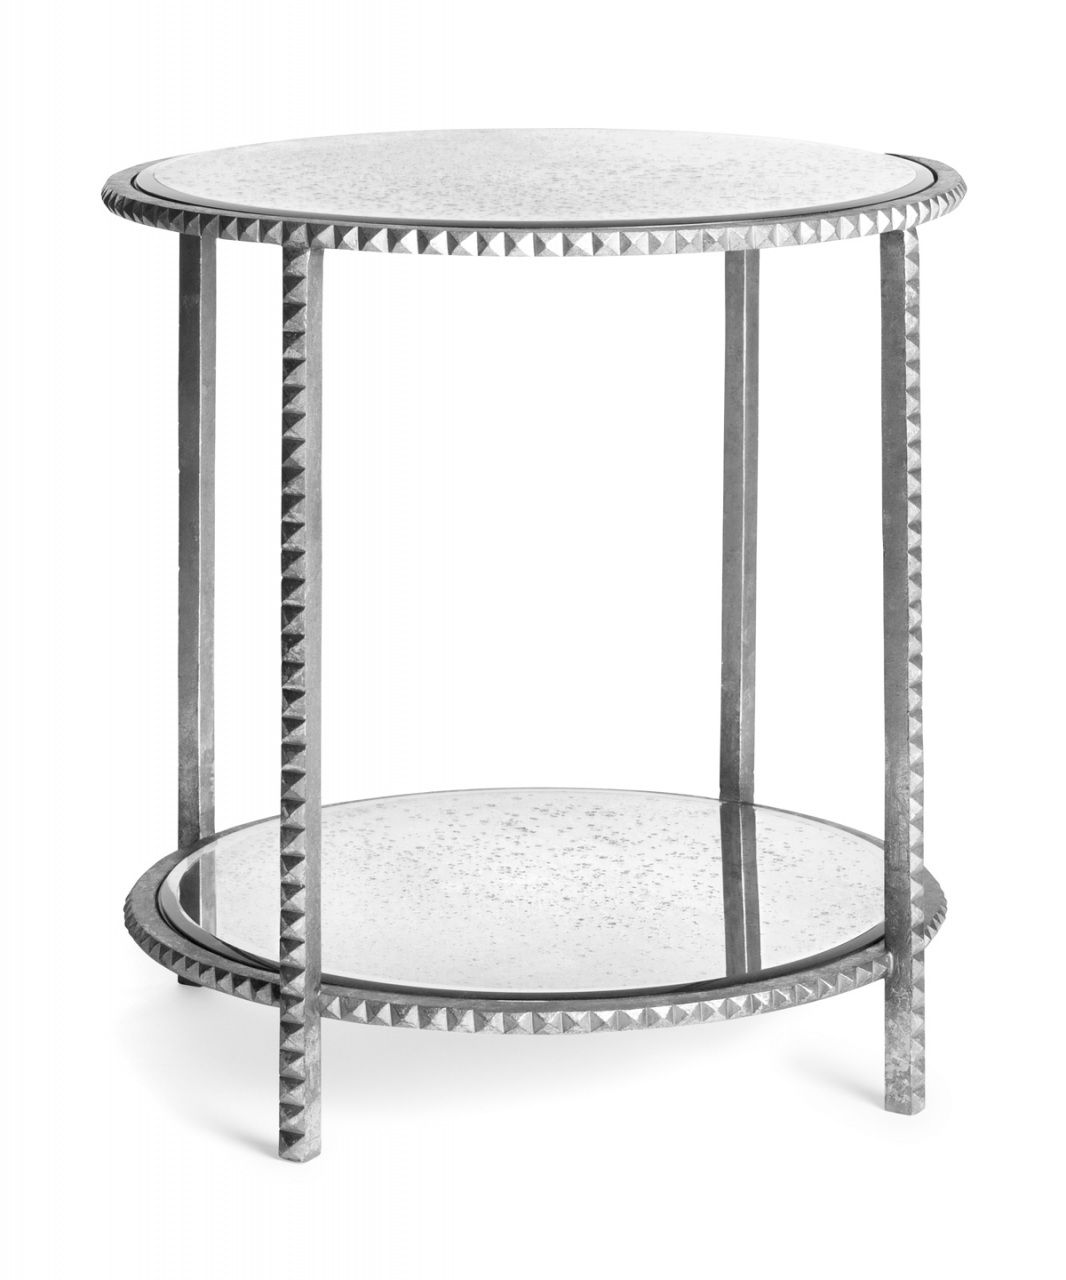 50 Silver Round End Table Contemporary Modern Furniture Check More At Http